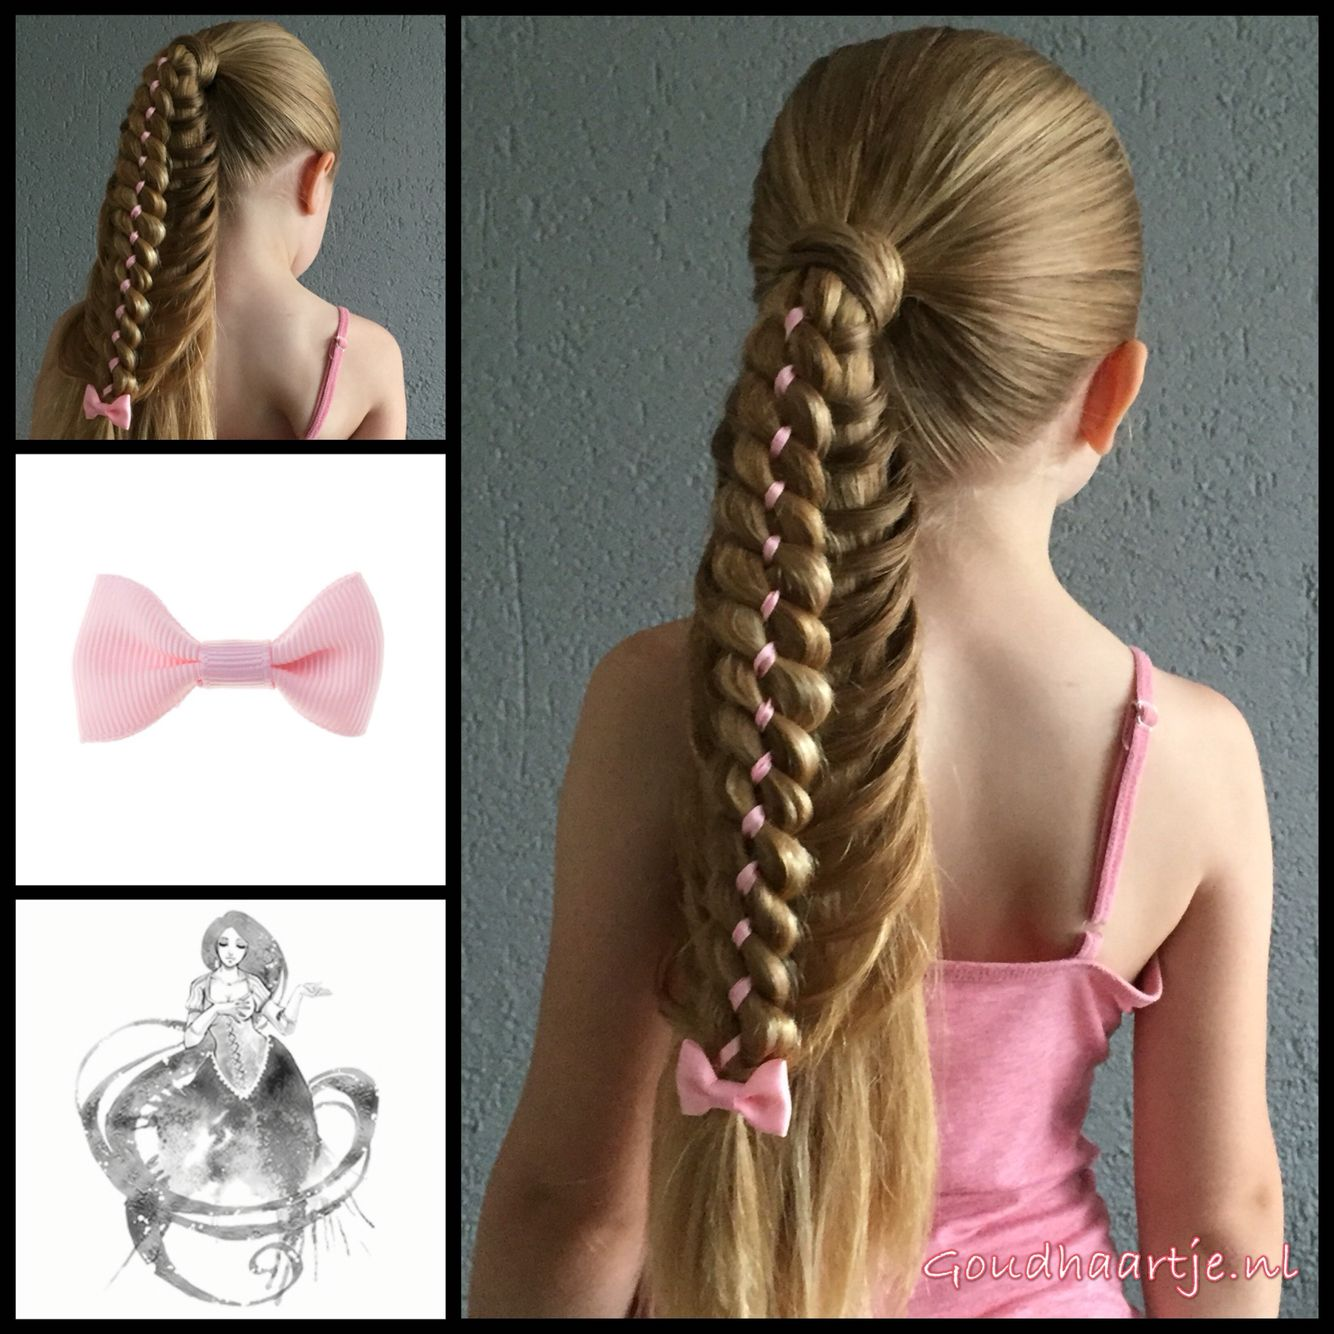 Ponytail With A Four Strand Ribbon Braid And A Little Cute Bow